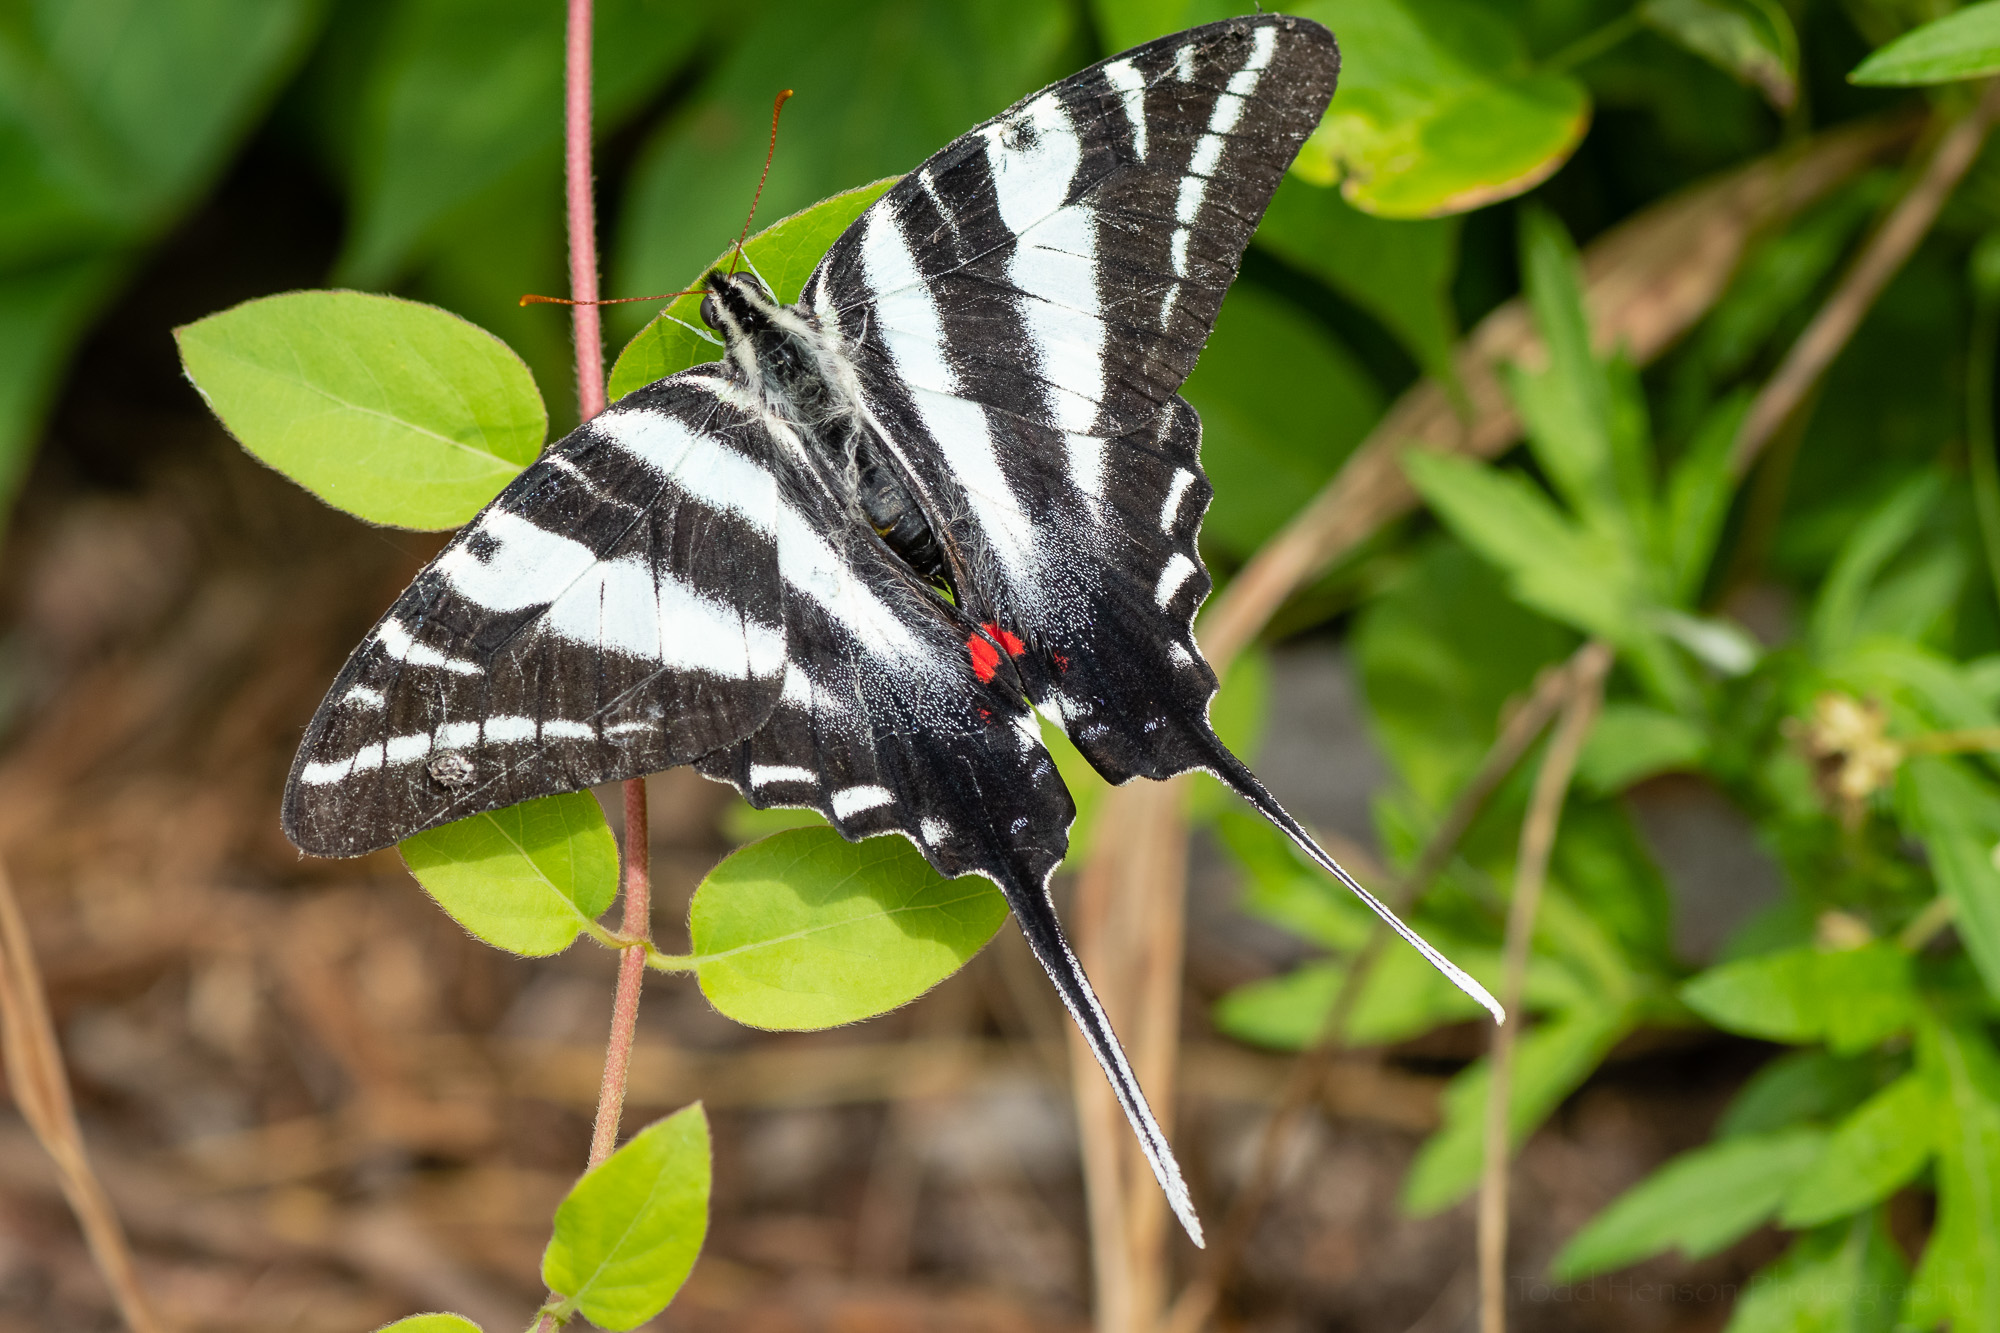 A Zebra Swallowtail butterfly which proved a very patient subject.